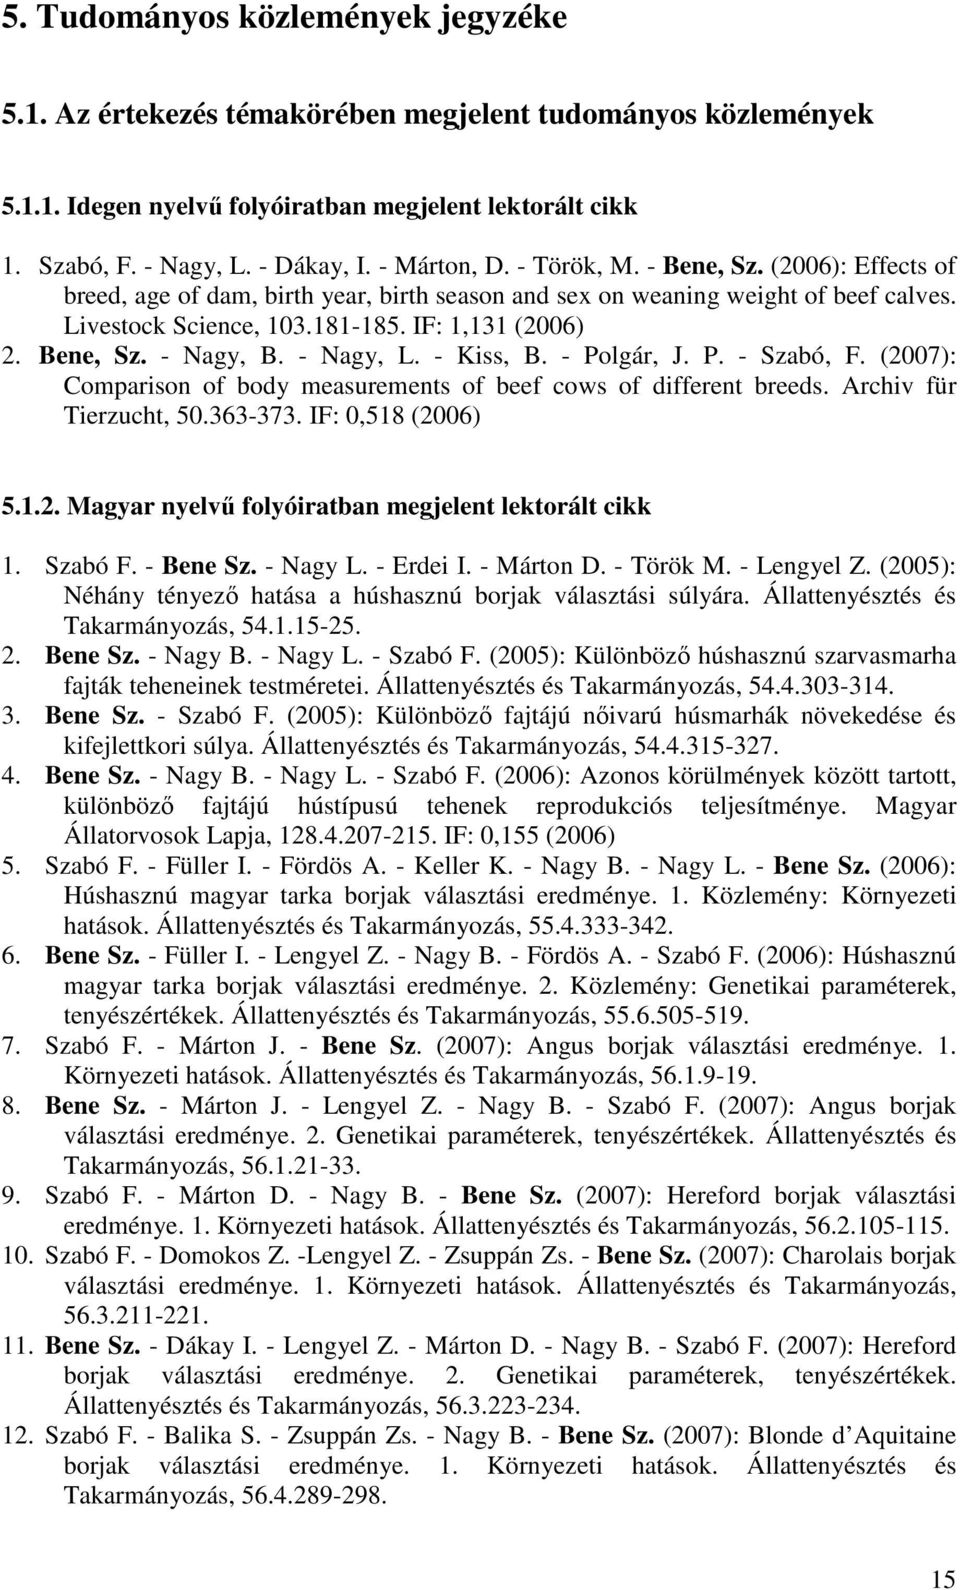 Bene, Sz. - Nagy, B. - Nagy, L. - Kiss, B. - Polgár, J. P. - Szabó, F. (2007): Comparison of body measurements of beef cows of different breeds. Archiv für Tierzucht, 50.363-373. IF: 0,518 (2006) 5.1.2. Magyar nyelv folyóiratban megjelent lektorált cikk 1.